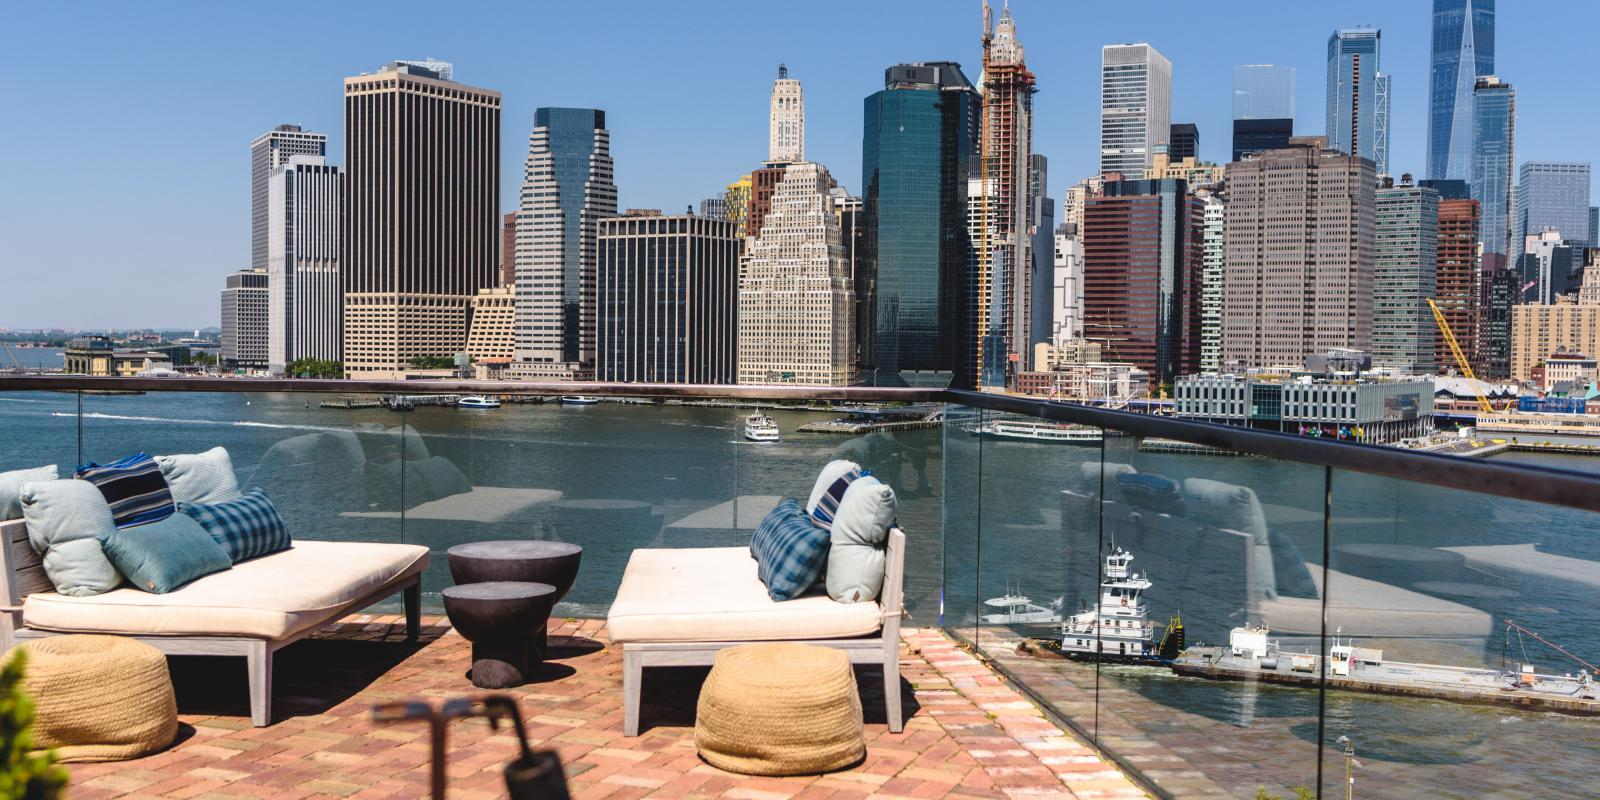 New York In April - 25 Things To Do In NYC | April 2019